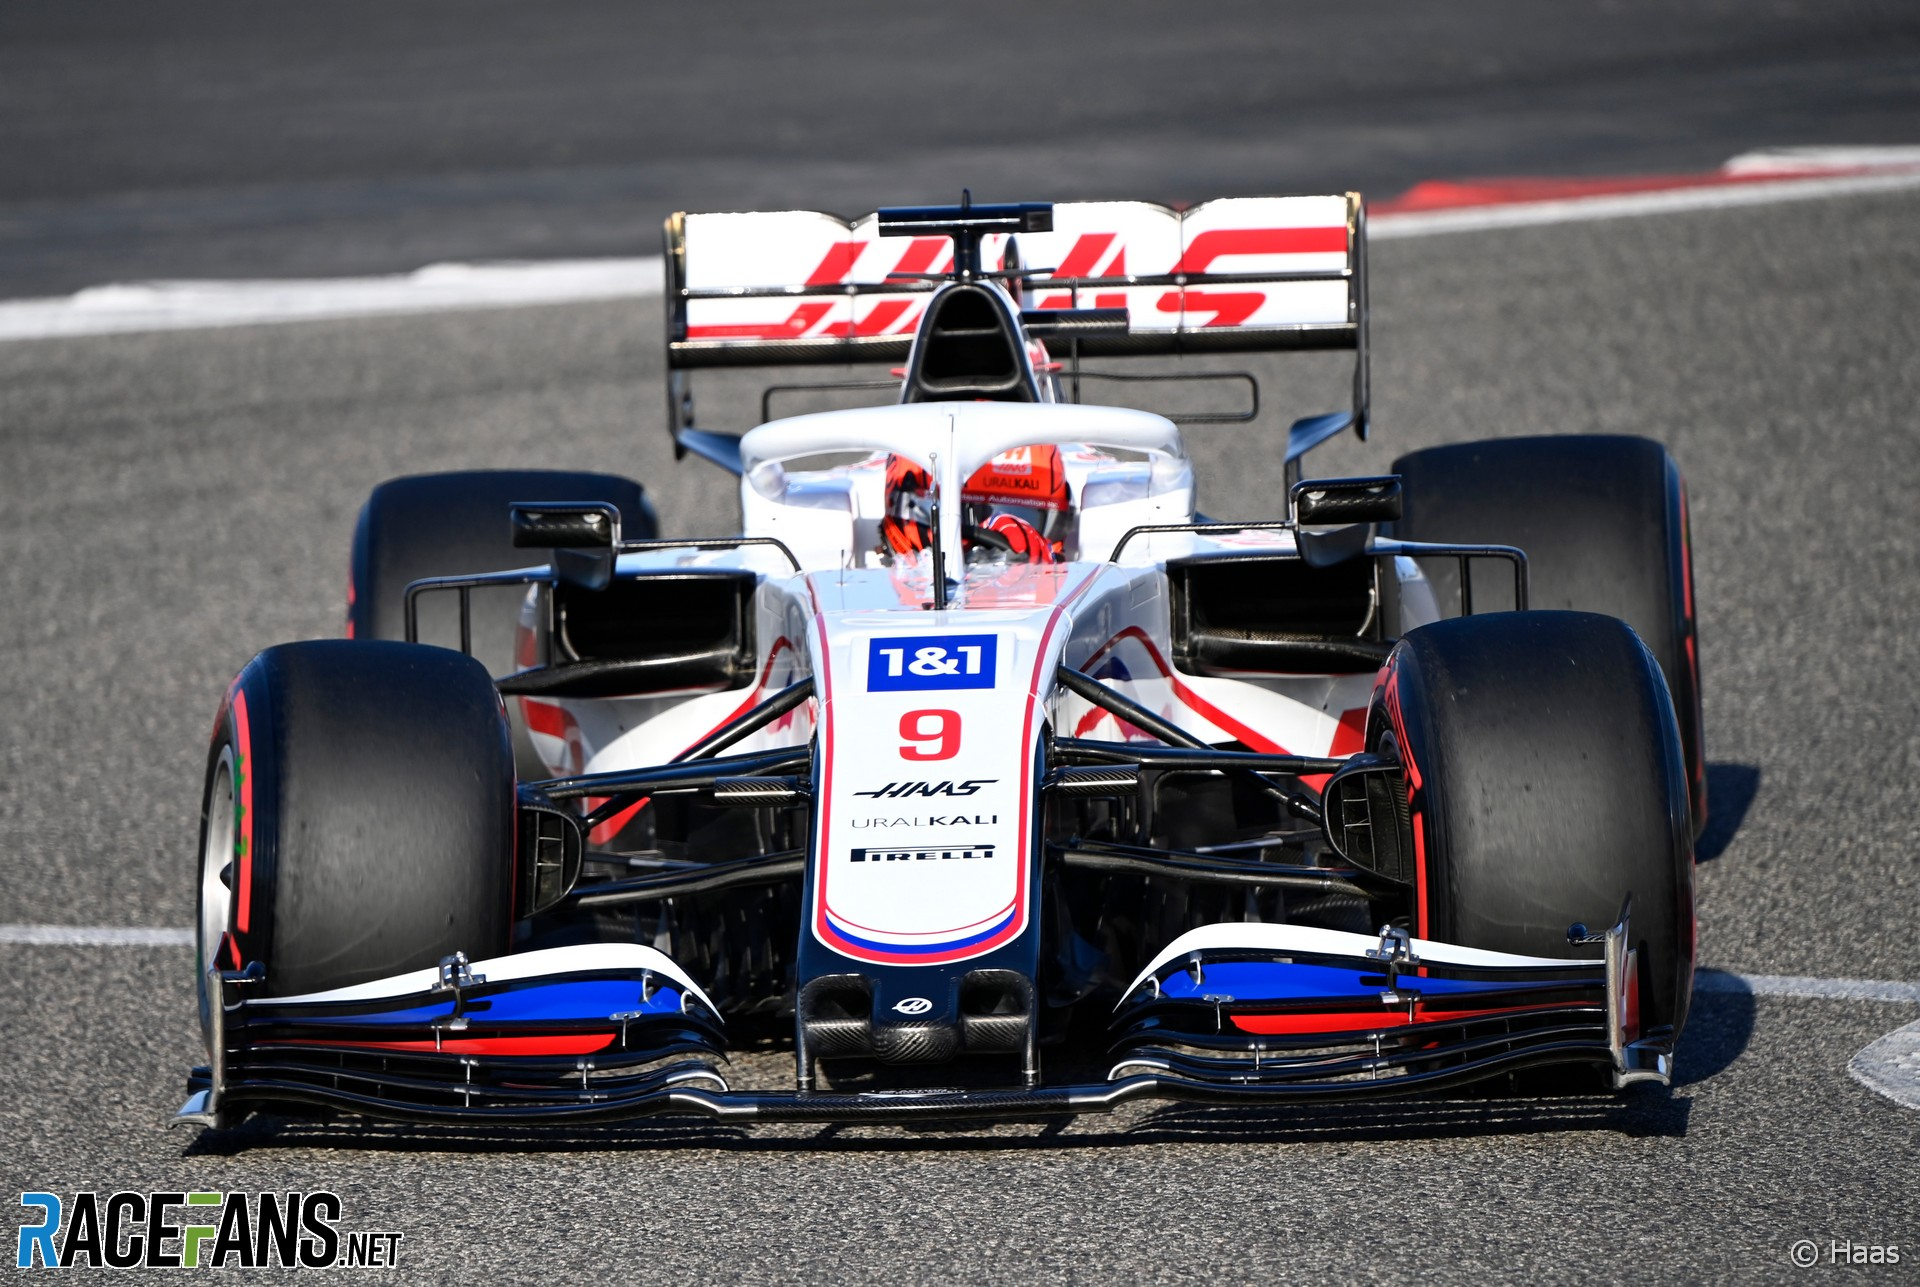 Nikita Mazepin, Haas, Bahrain International Circuit, 2021